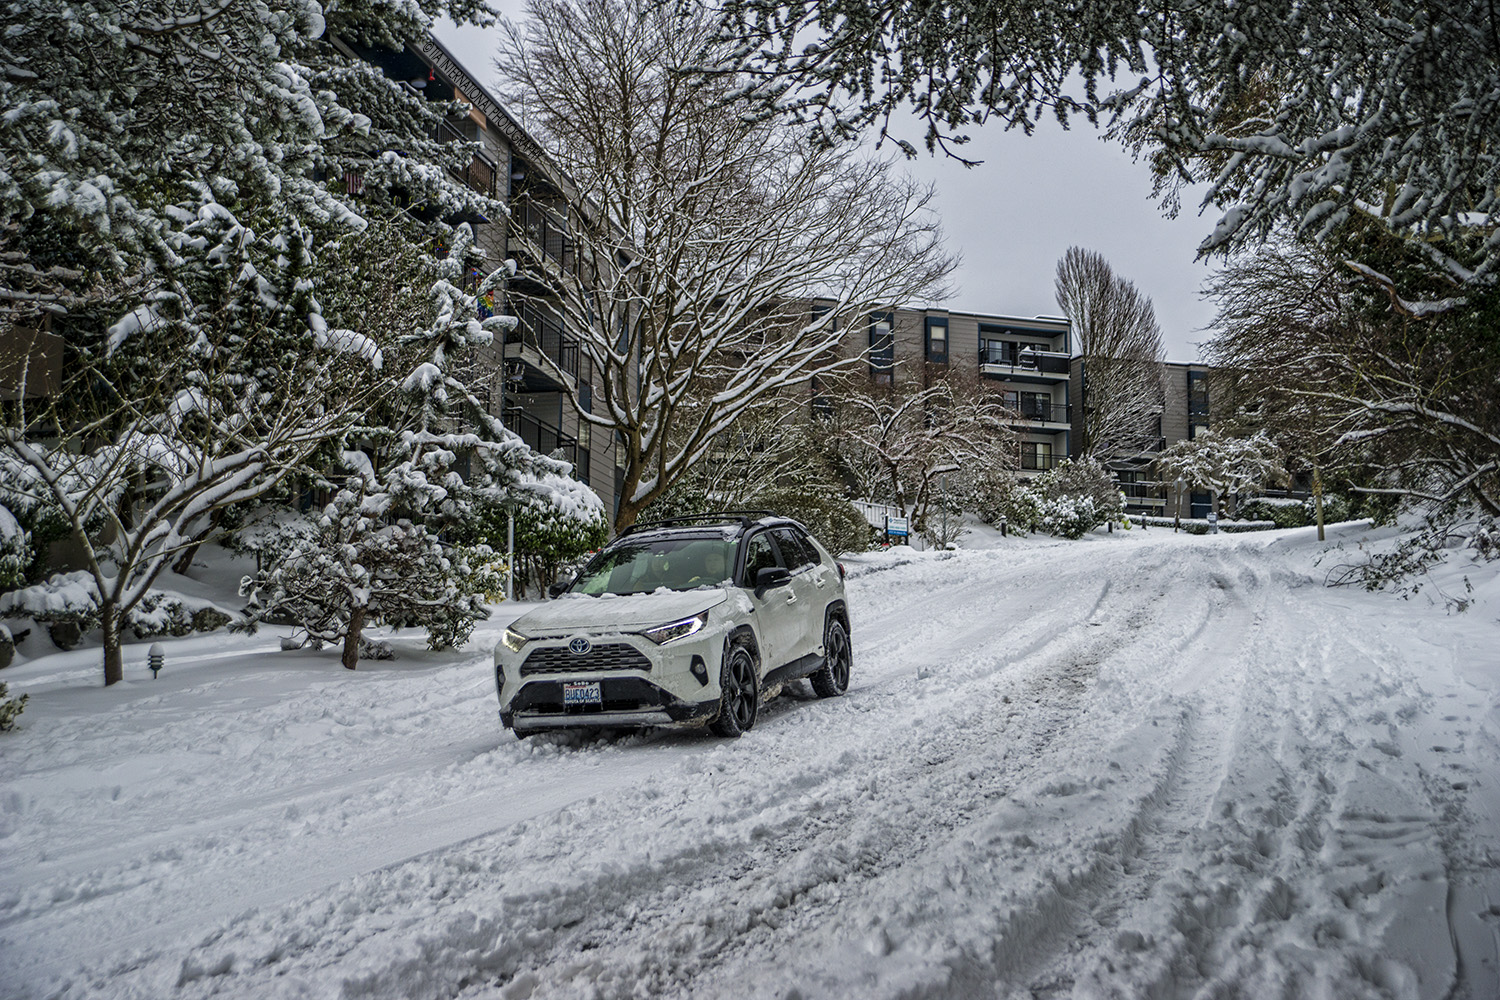 Driving down the steep hill along Manor Place, Magnolia, Seattle (February 13, 2021).